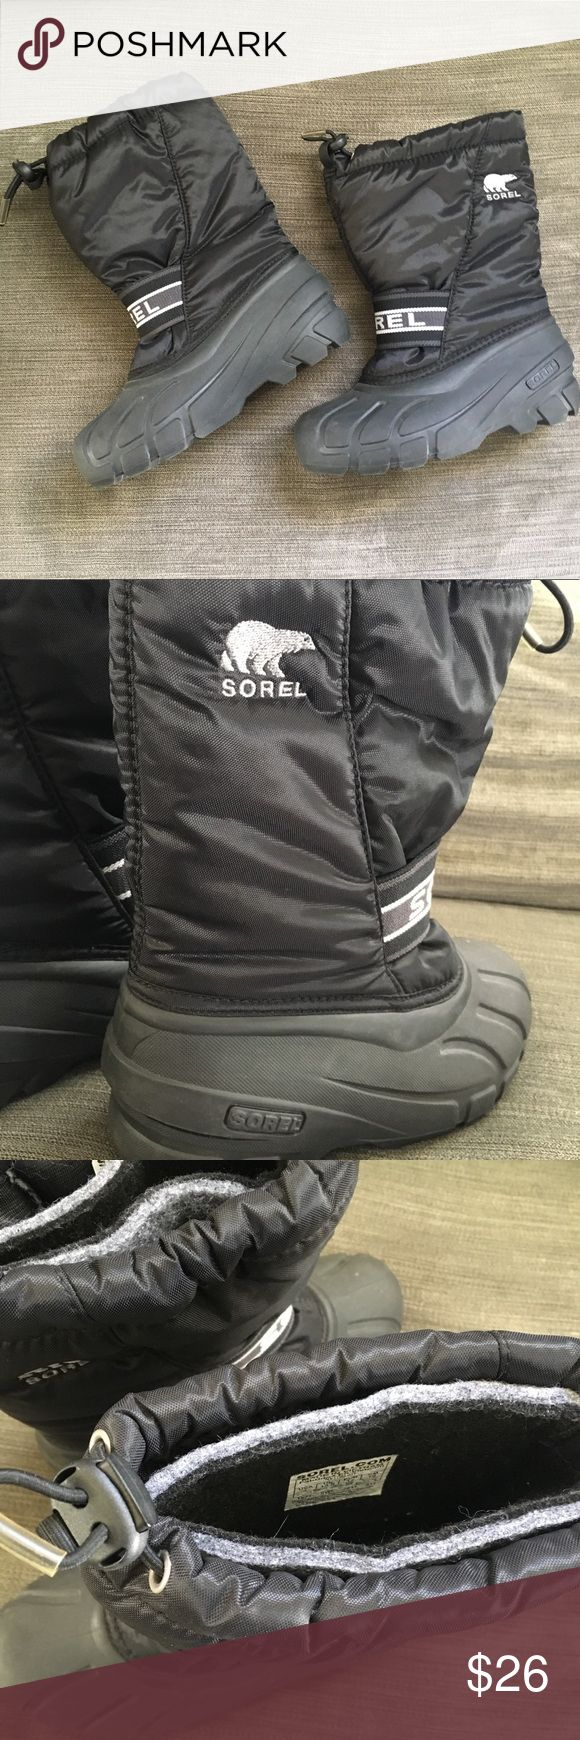 """Sorel Youth Snow Boots Sorel kids snow boots in black. Upper is water and wind resistant synthetic textile with a barrel lock closure and elastic instep strap. Outsole is waterproof rubber with multidirectional lugs for traction. Insulated by a removable and washable felt inner boot. Rated -25 degrees Fahrenheit. Shaft height 8"""", heel height 1"""". EUC! Sorel Shoes Rain & Snow Boots"""